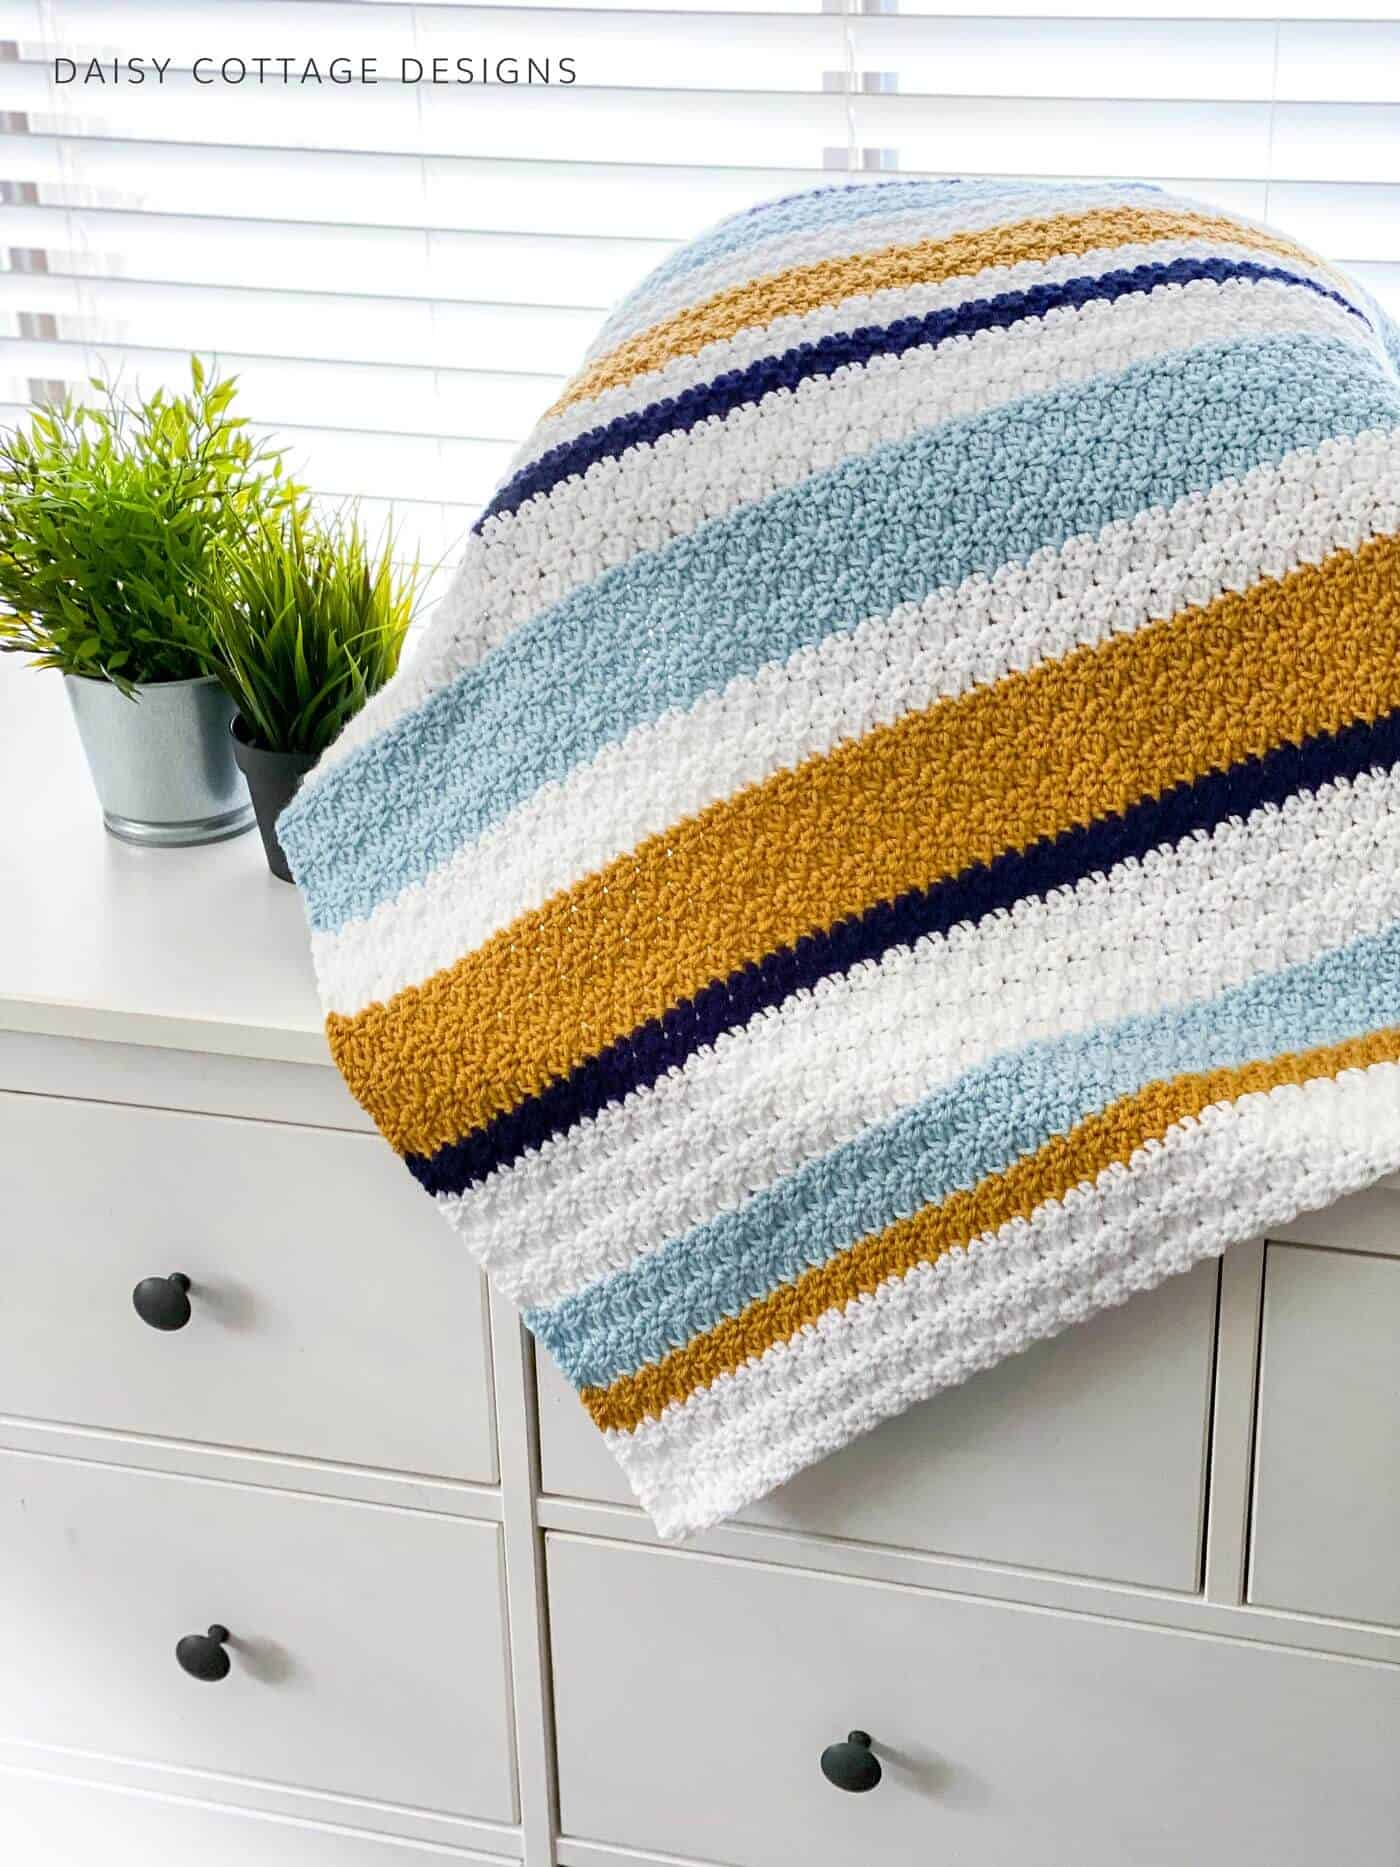 This modern blanket crochet pattern is a free crochet pattern. Easy to follow instructions and a video tutorial go along with this.